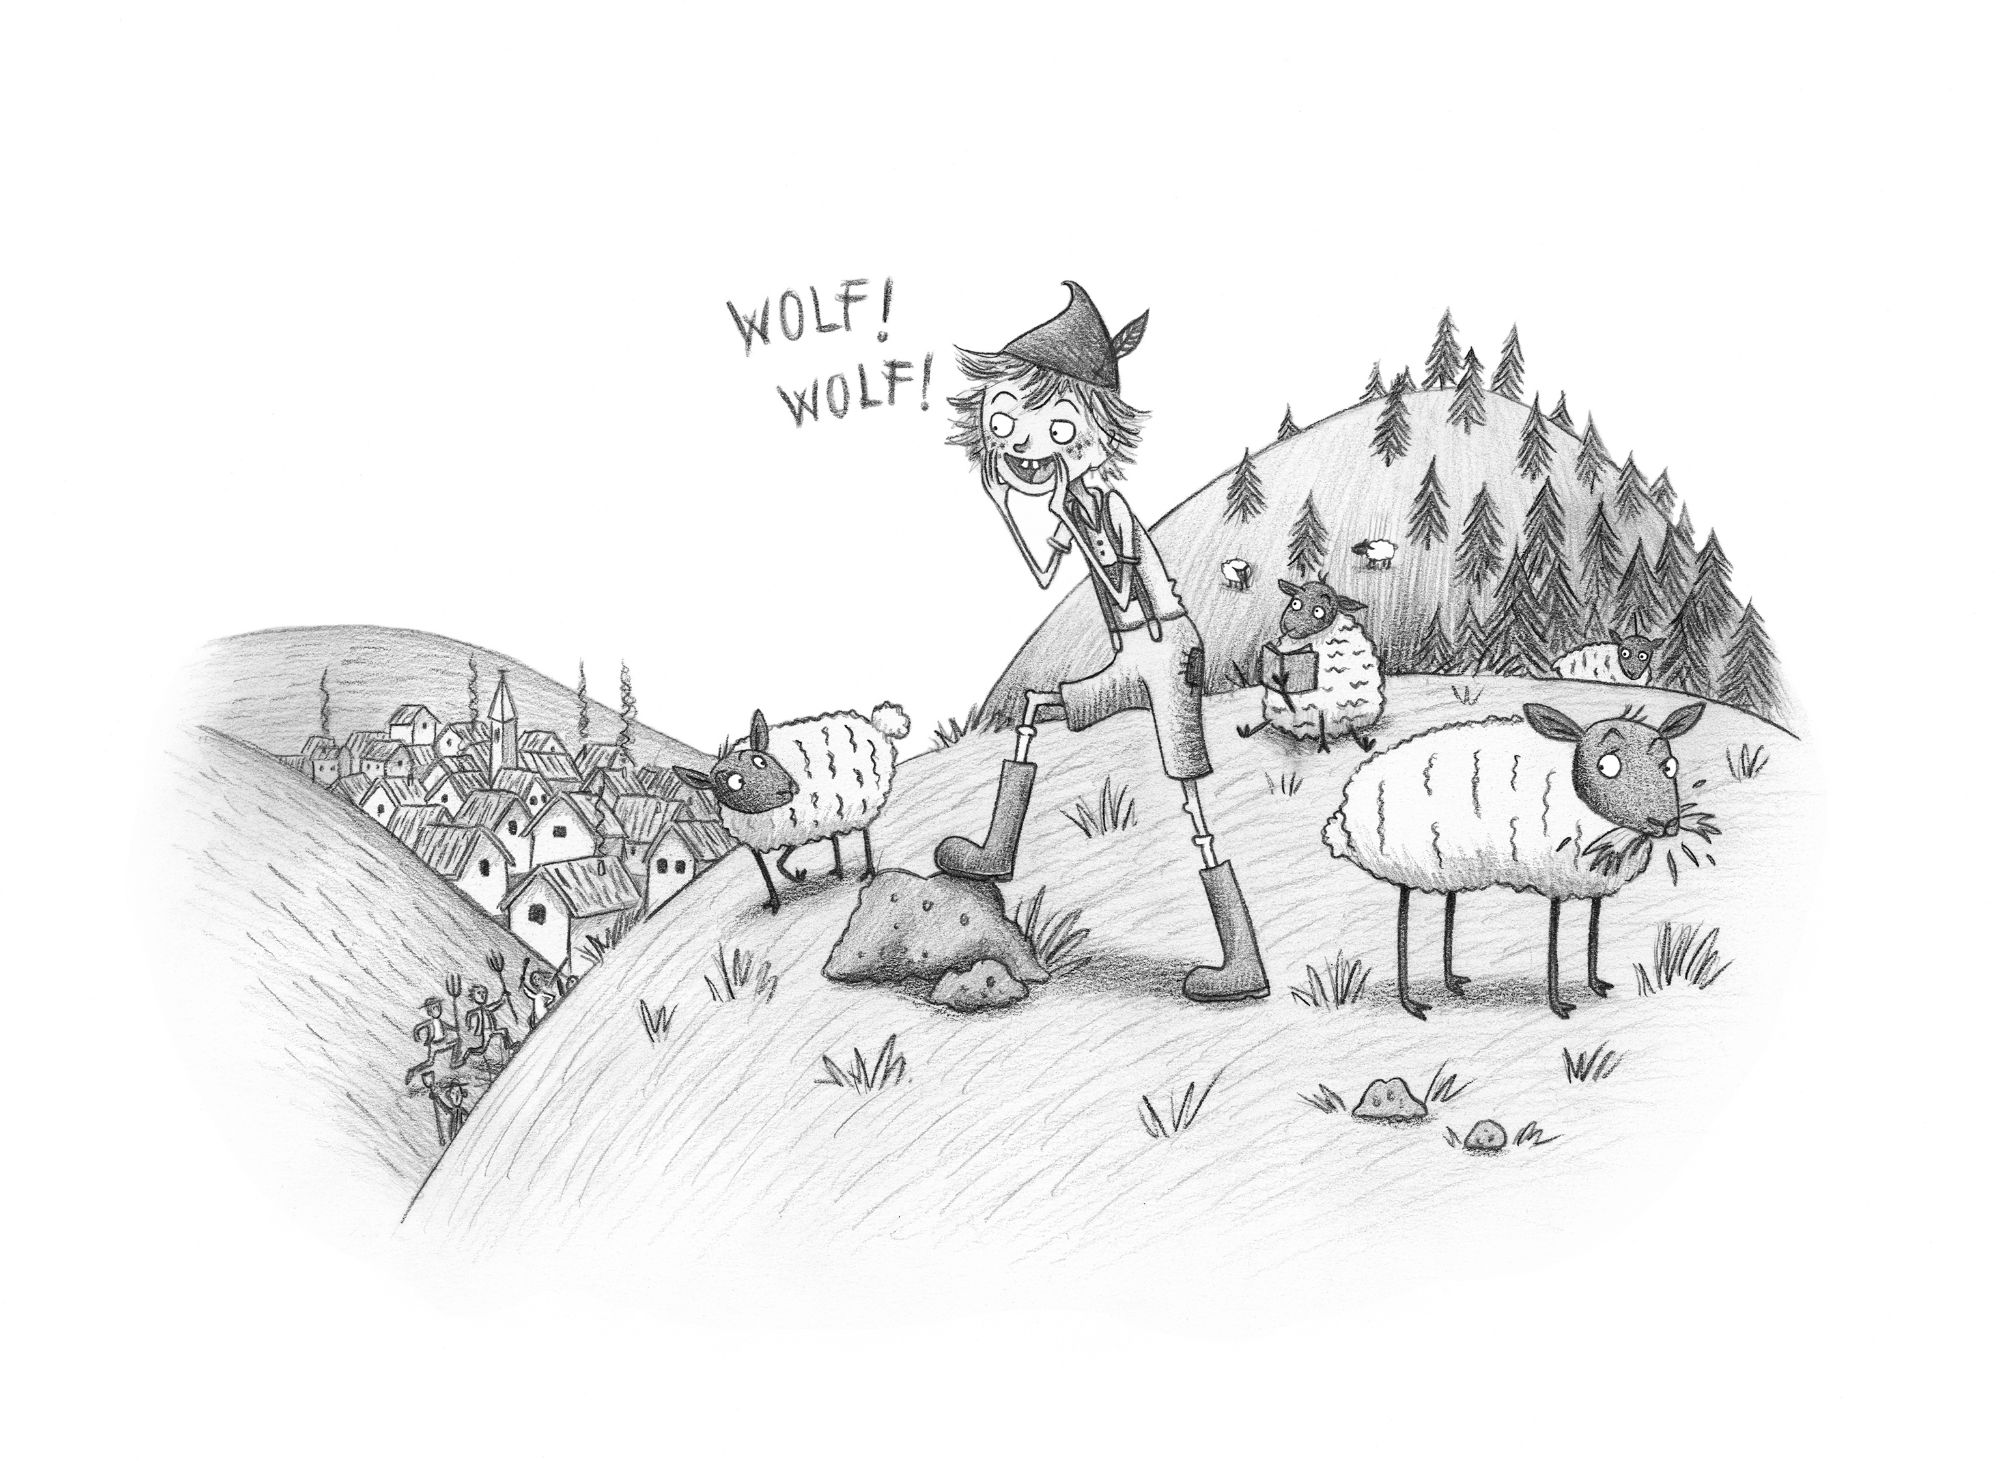 The boy who cried wolf illustration